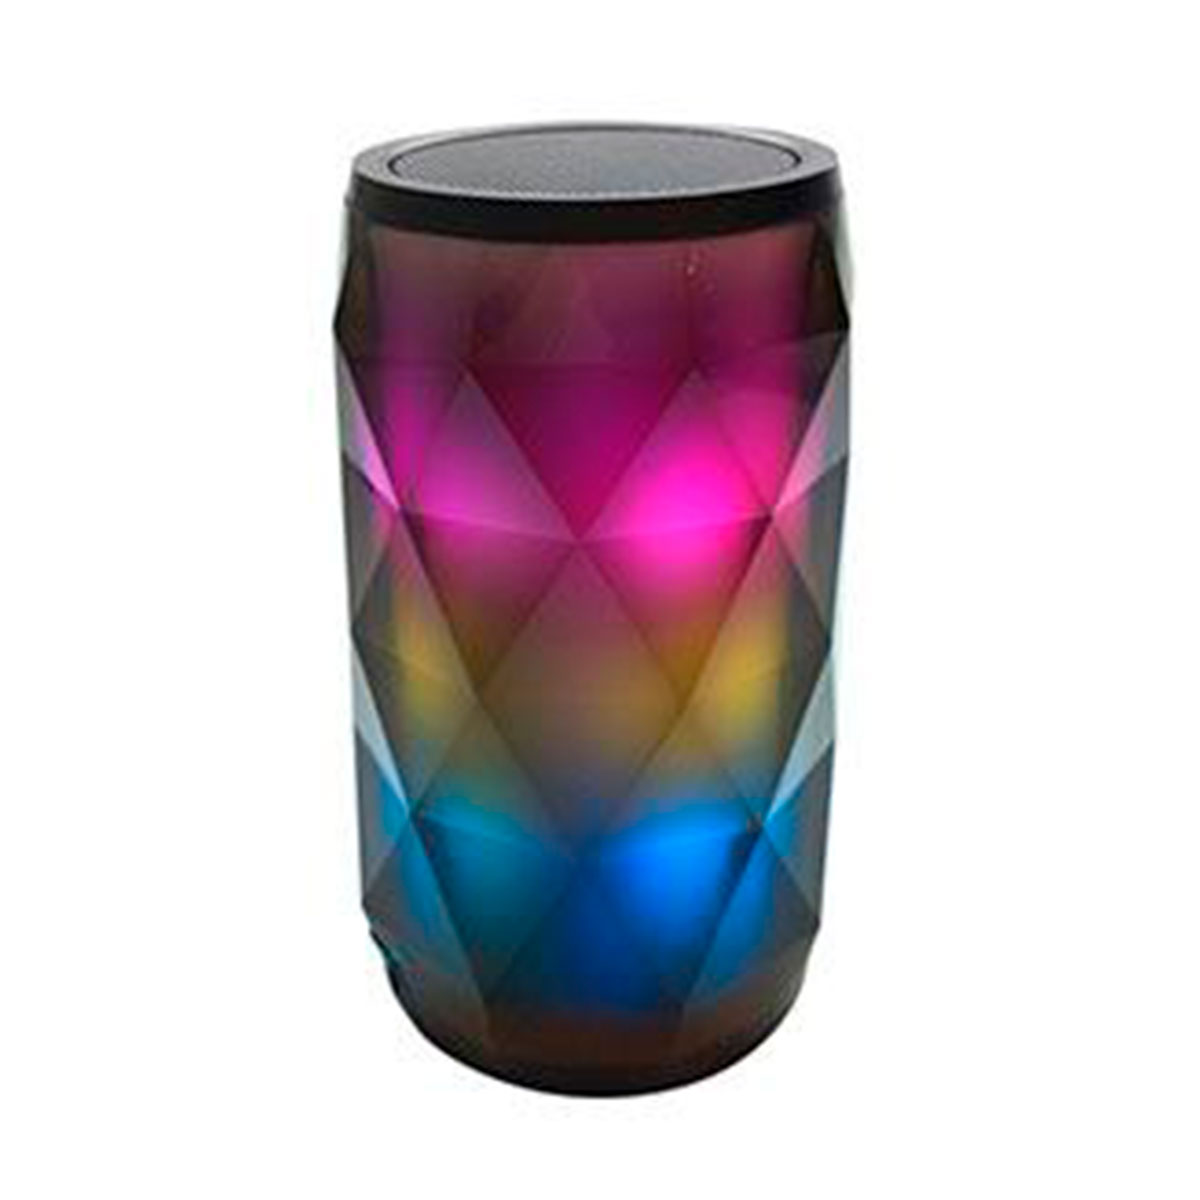 SPG-003 GTC                                                          | PARLANTE SPG-003 PORTATIL BLUETOOTH LUCES LED COLORES AUDIORITMICO